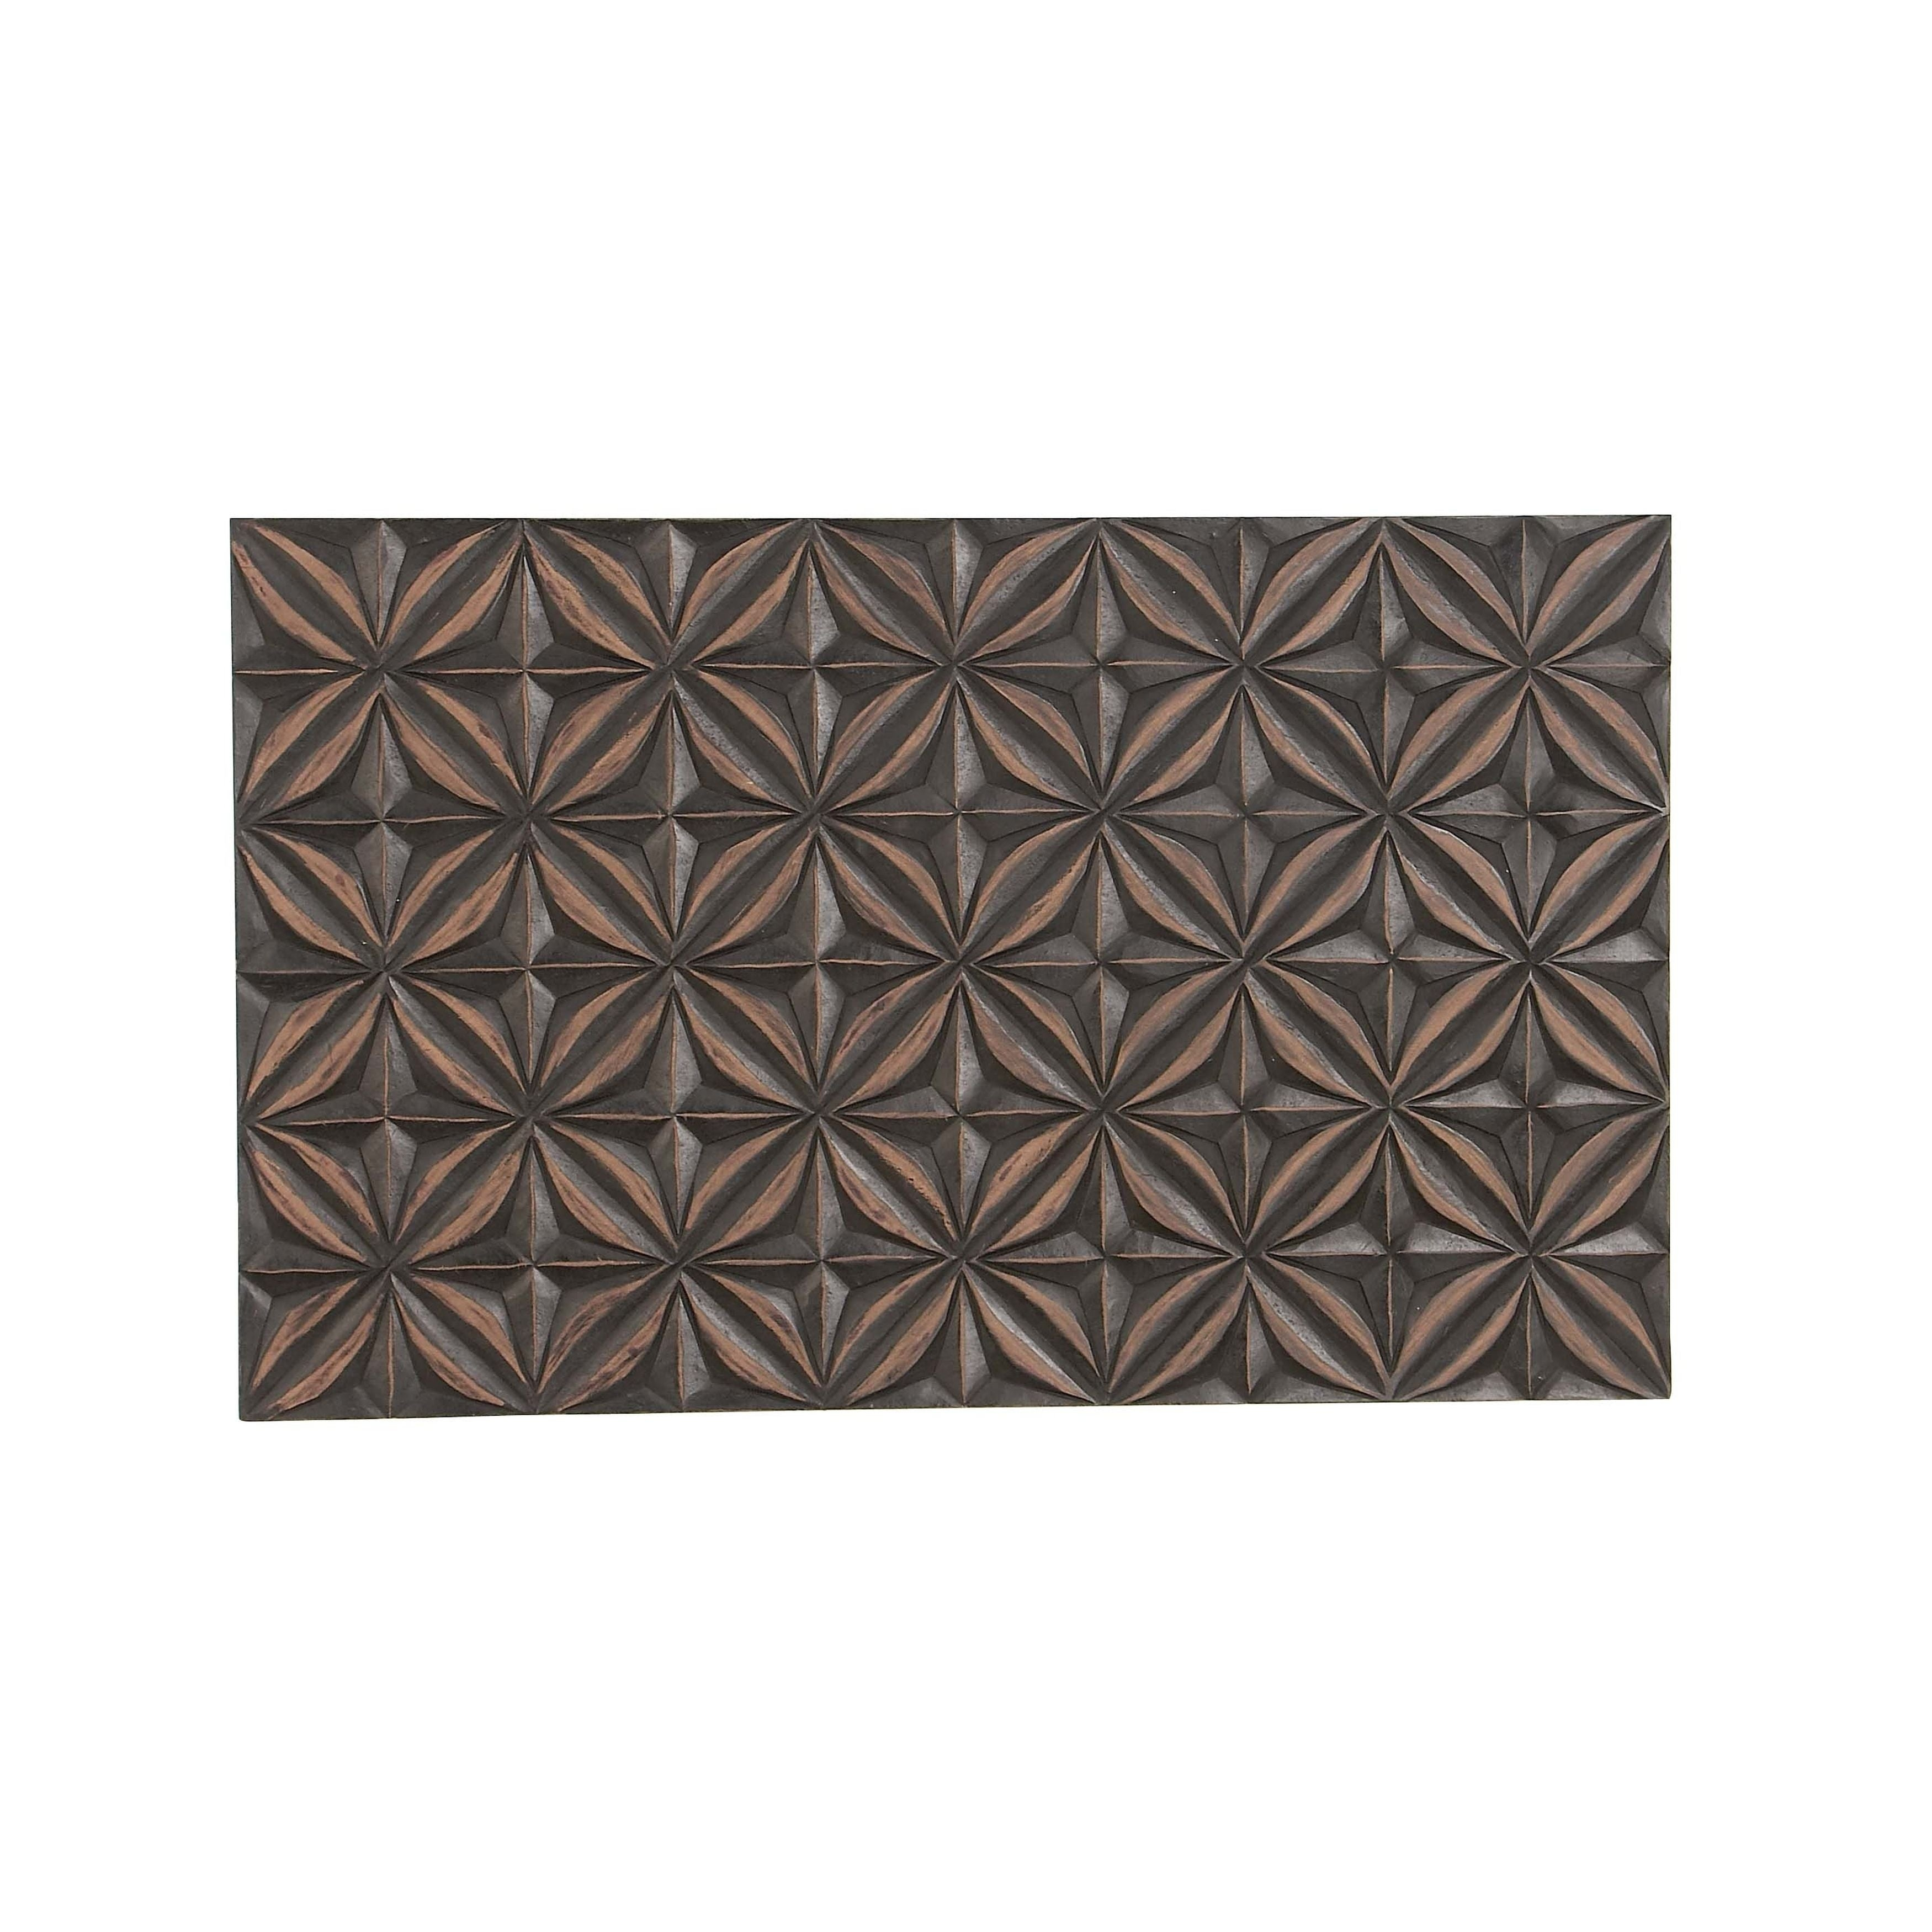 Trendy Floral Patterned Over The Door Wall Decor Throughout Shop Modern Pine Wood Rectangular Floral Lattice Patterned Wall (View 4 of 20)